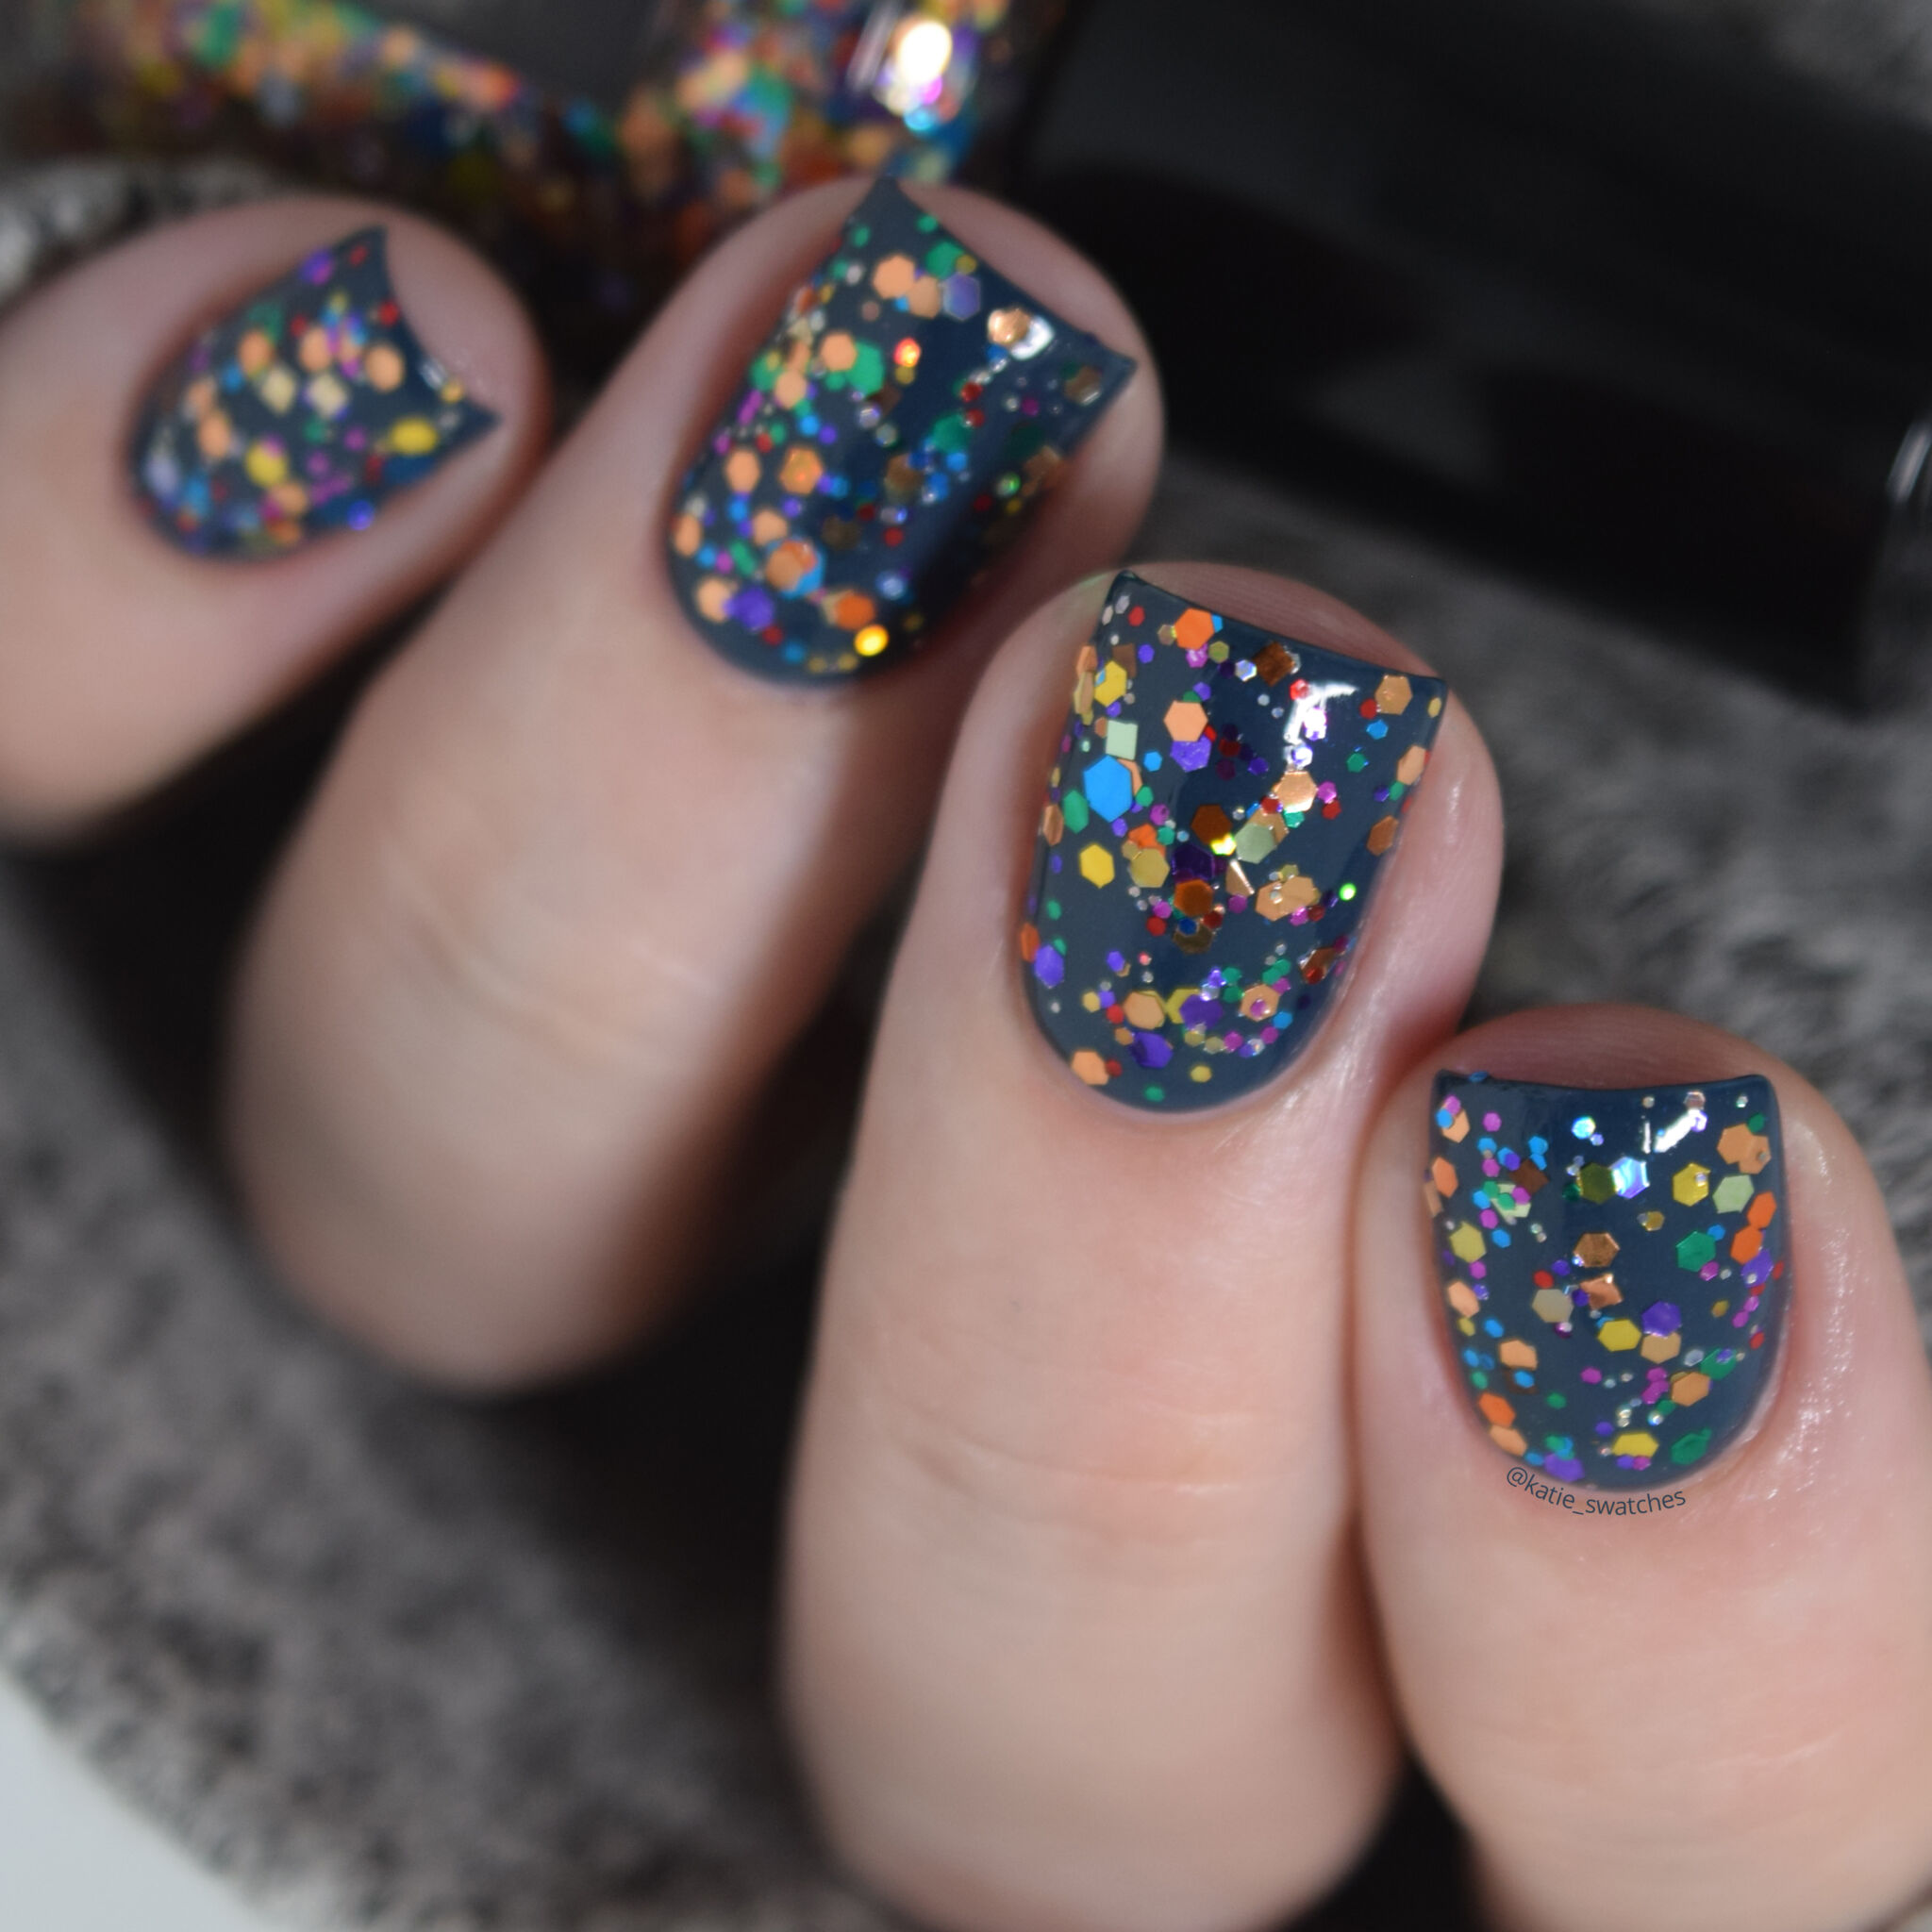 CrowsToes Nail Color Thing colorful glitter topper nail polish swatch indie nail polish layered over Catrice Hip Queens Wear Blue Jeans blue creme nail polish